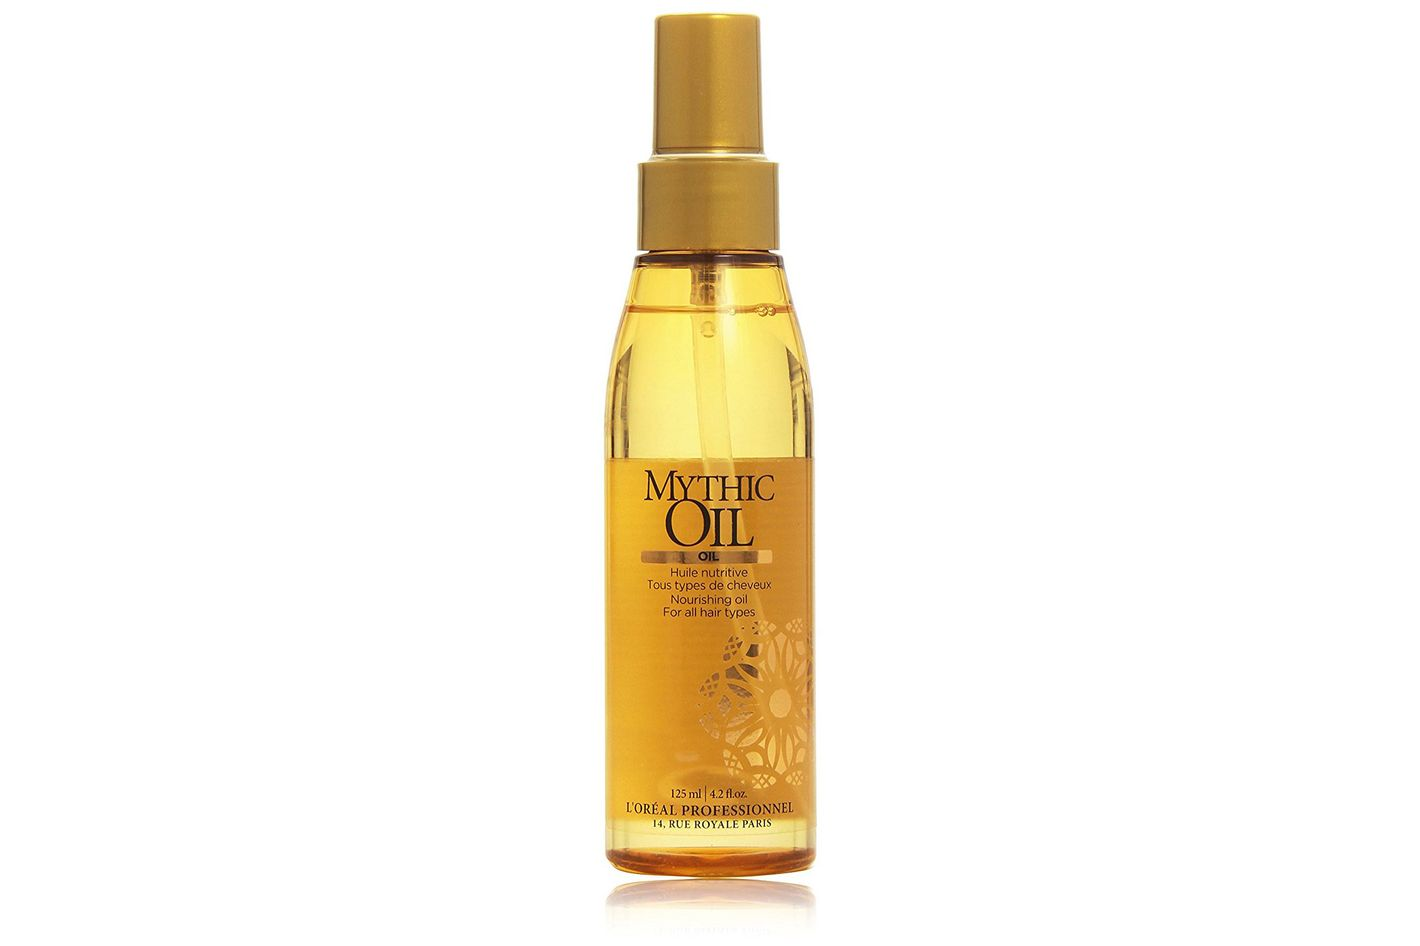 L'Oreal Professionnel Mythic Oil Nourishing Oil